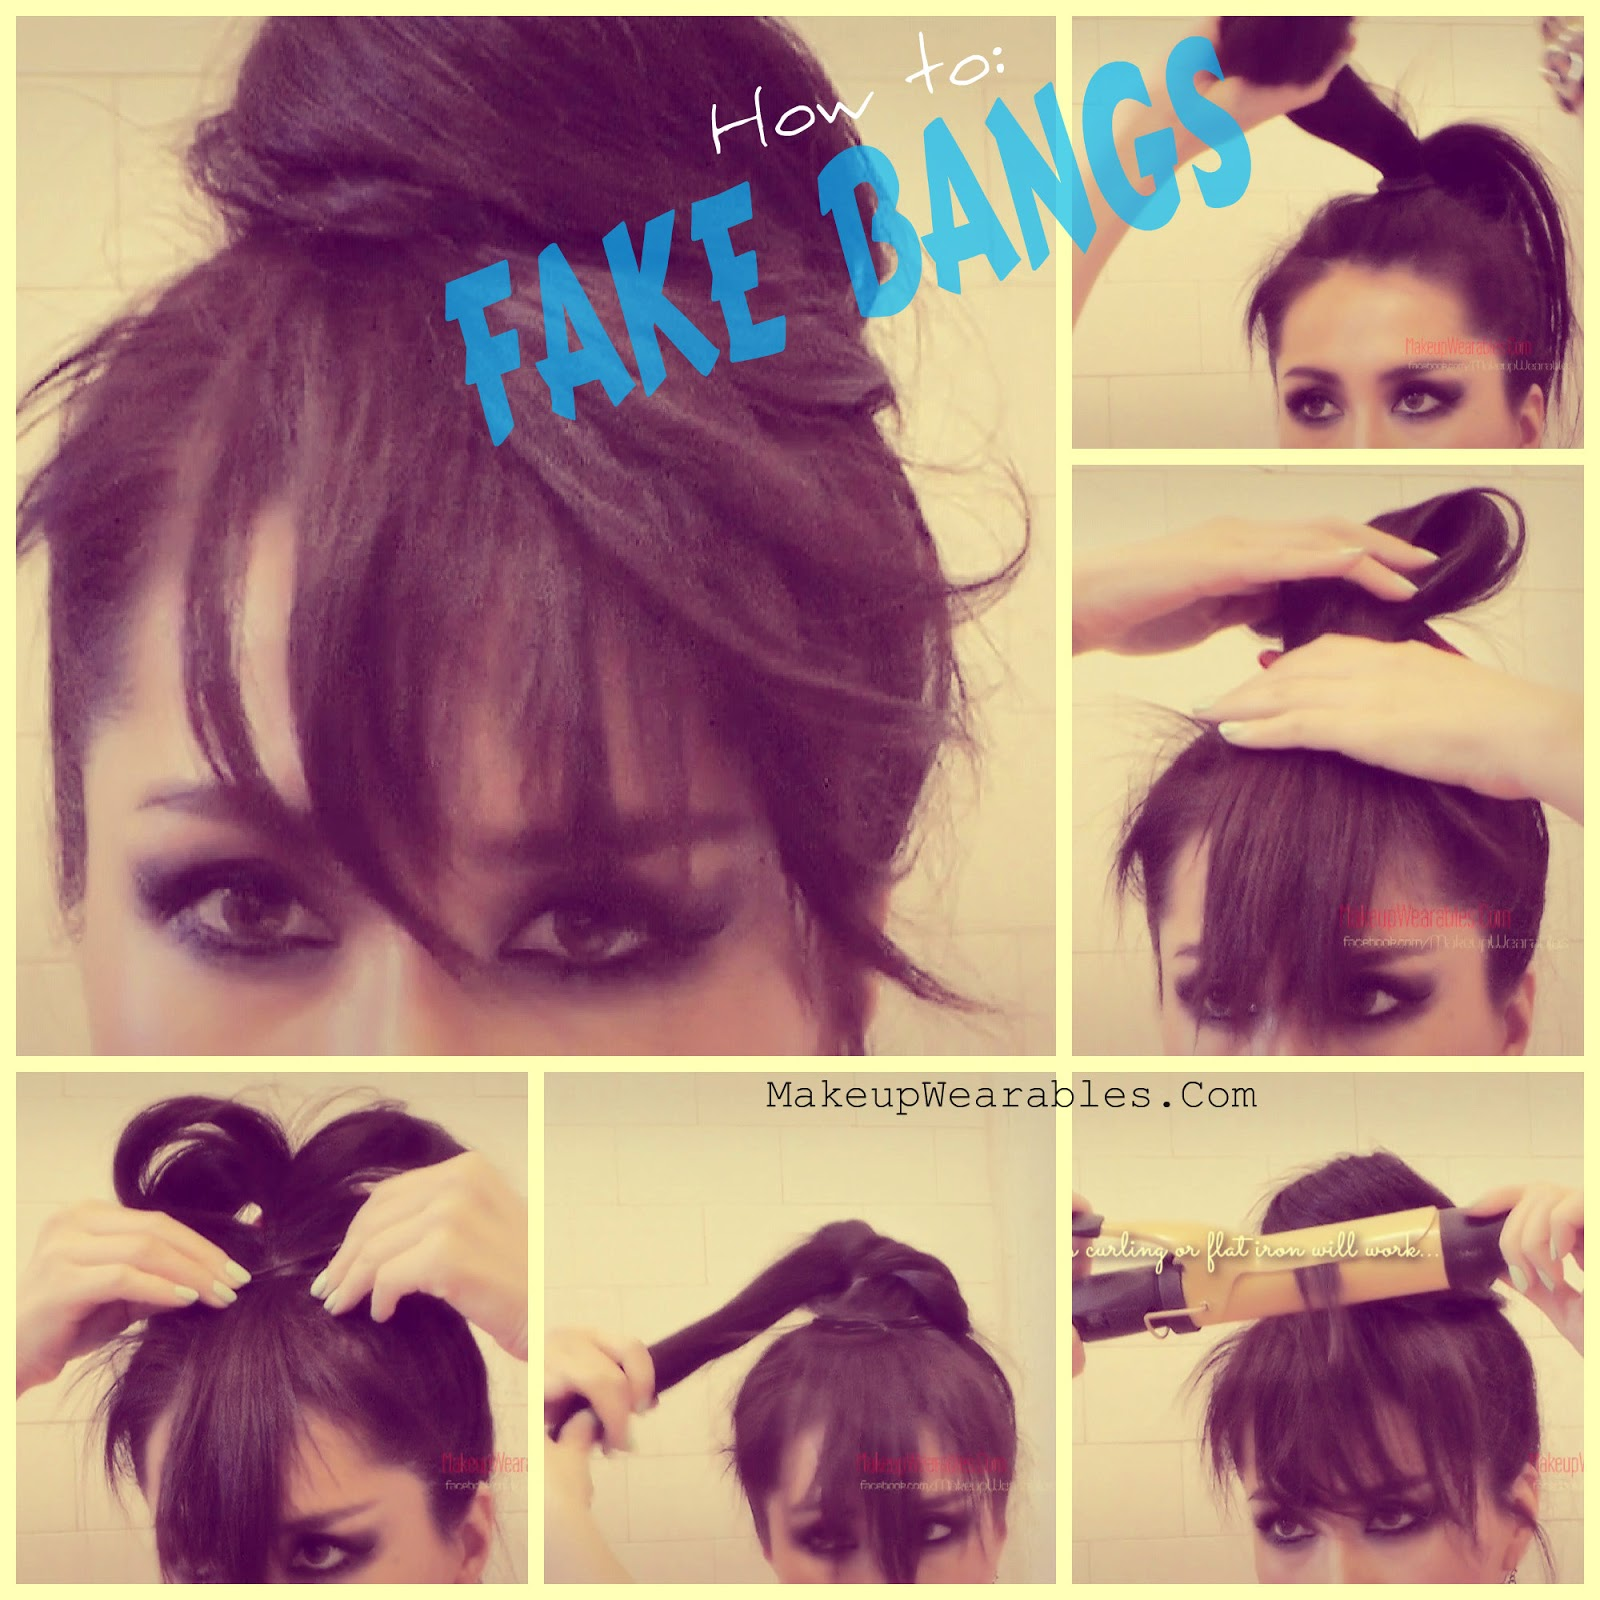 Superb How To Fake Bangs Cute Easy Bun Hairstyles Hair Tutorial Video Hairstyle Inspiration Daily Dogsangcom